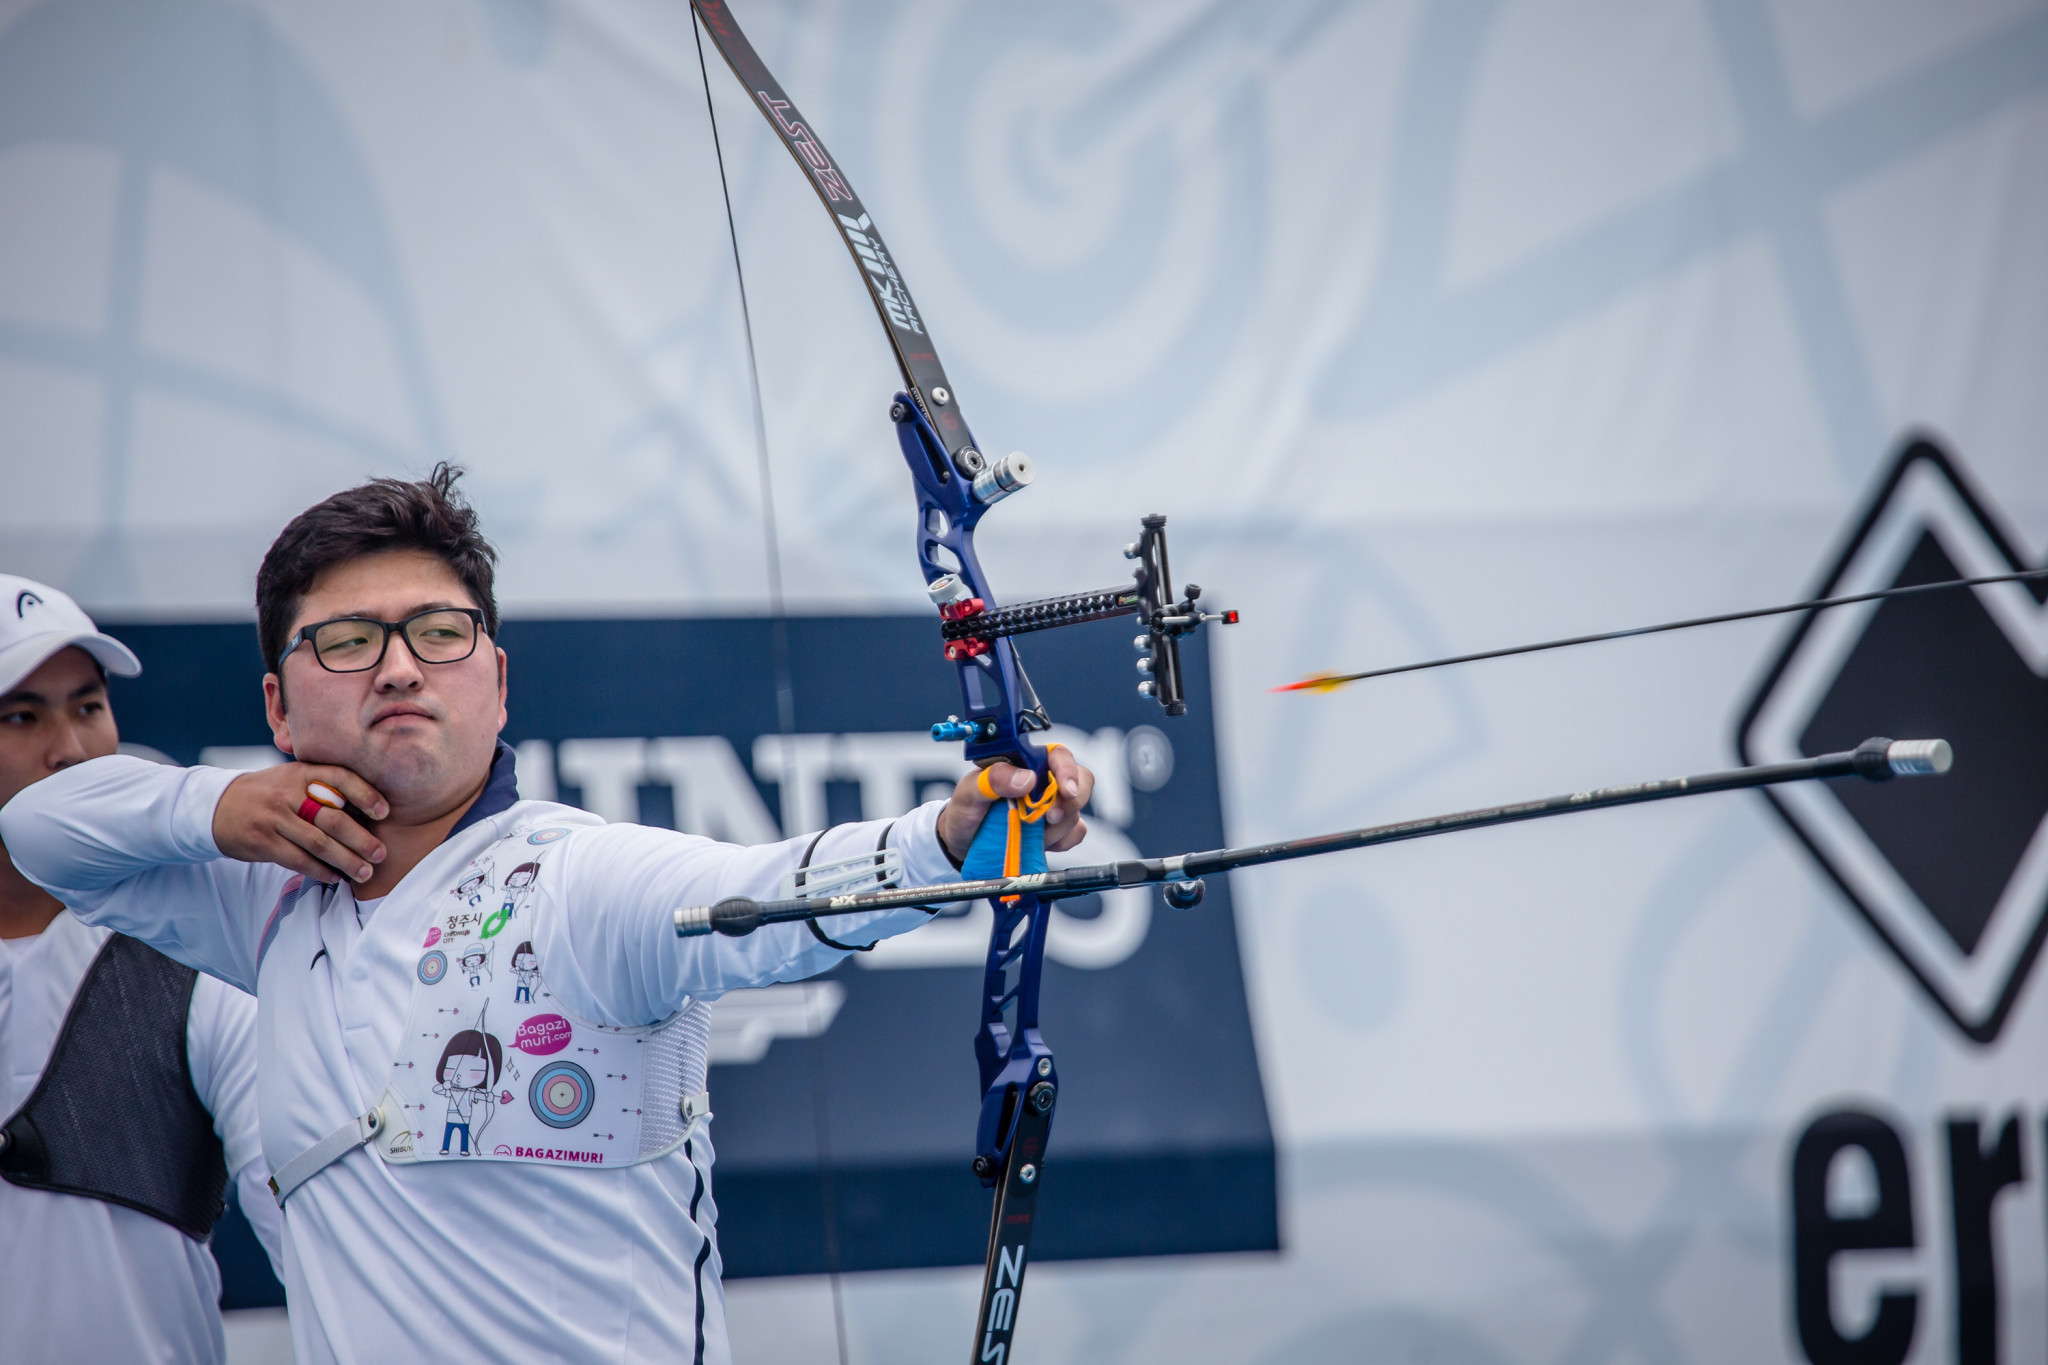 Kim and Lopez to defend titles at Archery World Cup Final